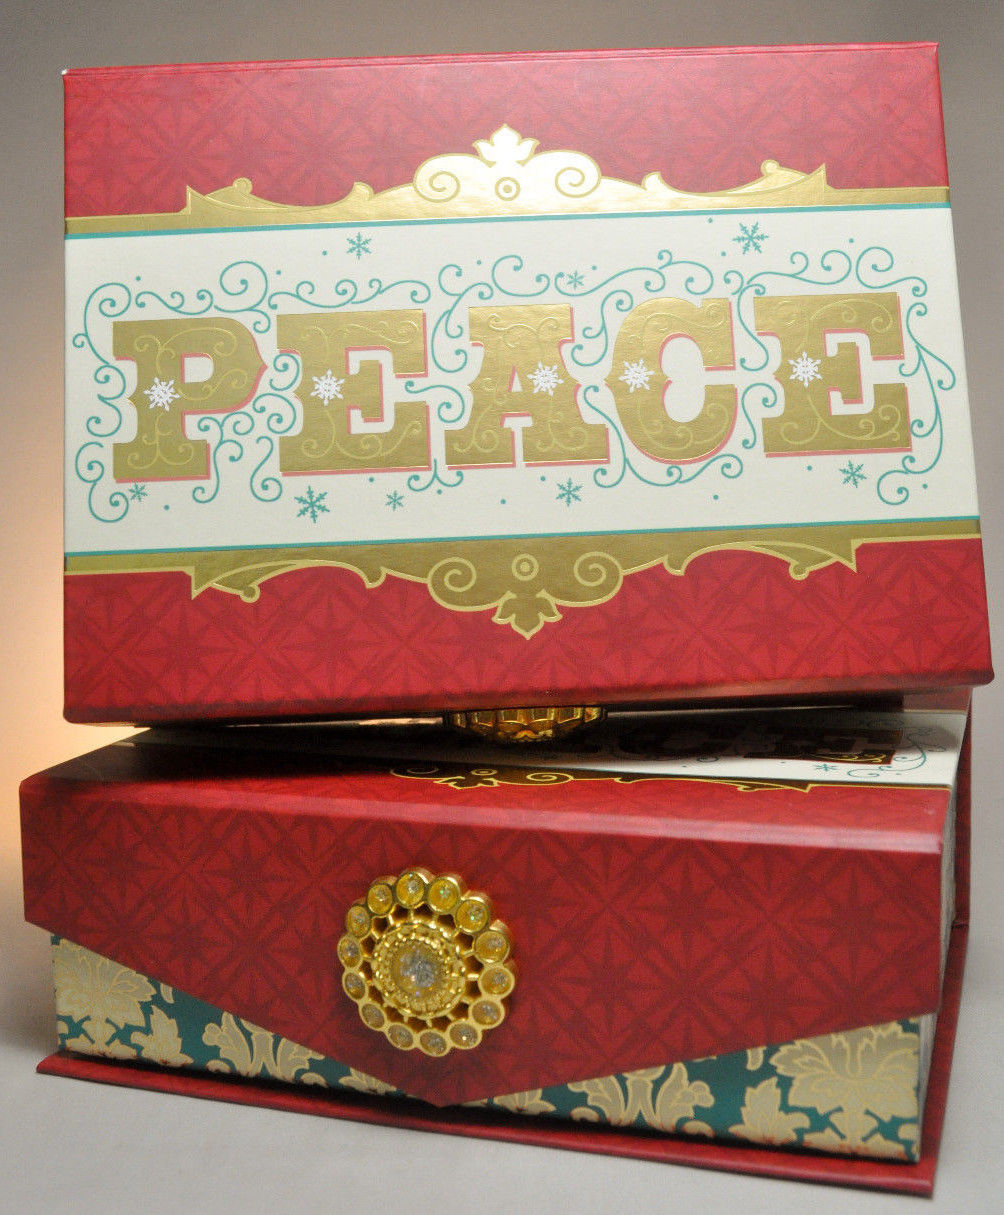 Hallmark: Boxed Christmas Cards - PEACE - and 50 similar items